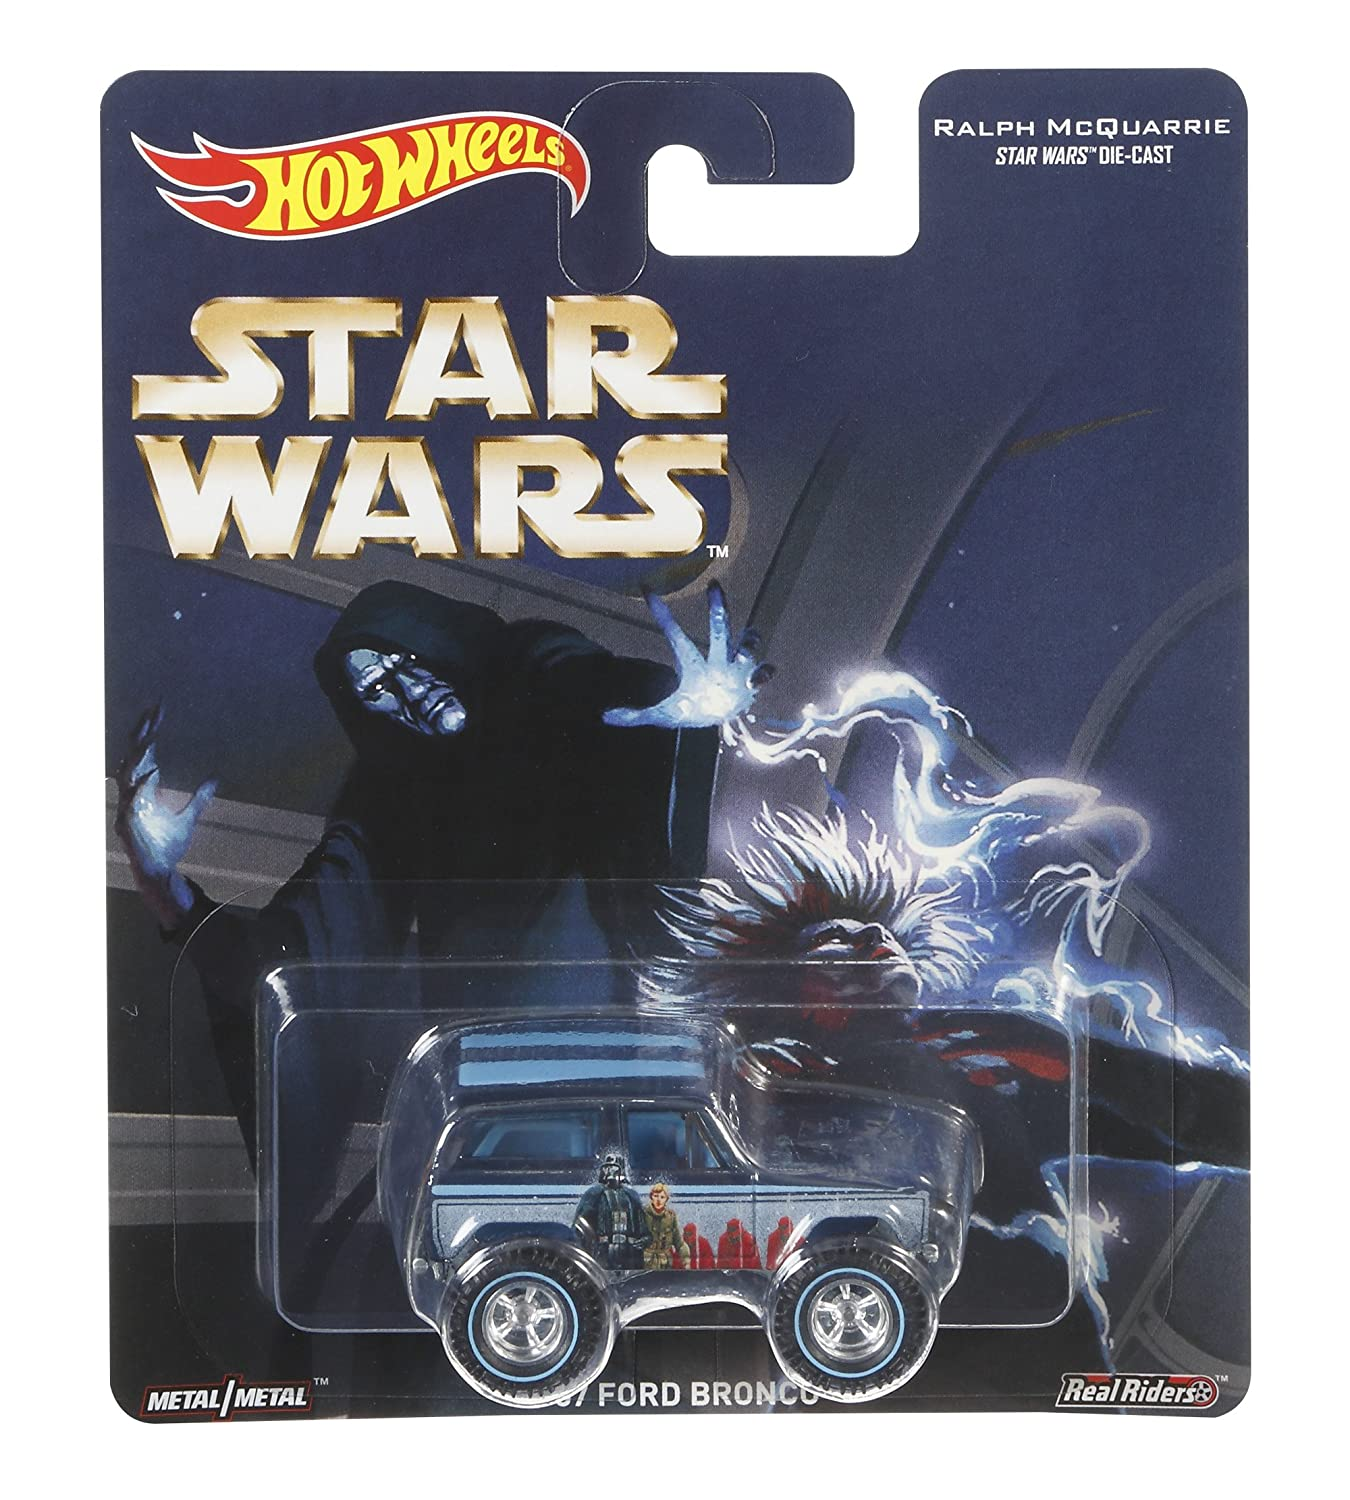 Hot Wheels Star Wars 67 Ford Bronco Vehicle Cheap Pole Barn Build Page 7 Forum